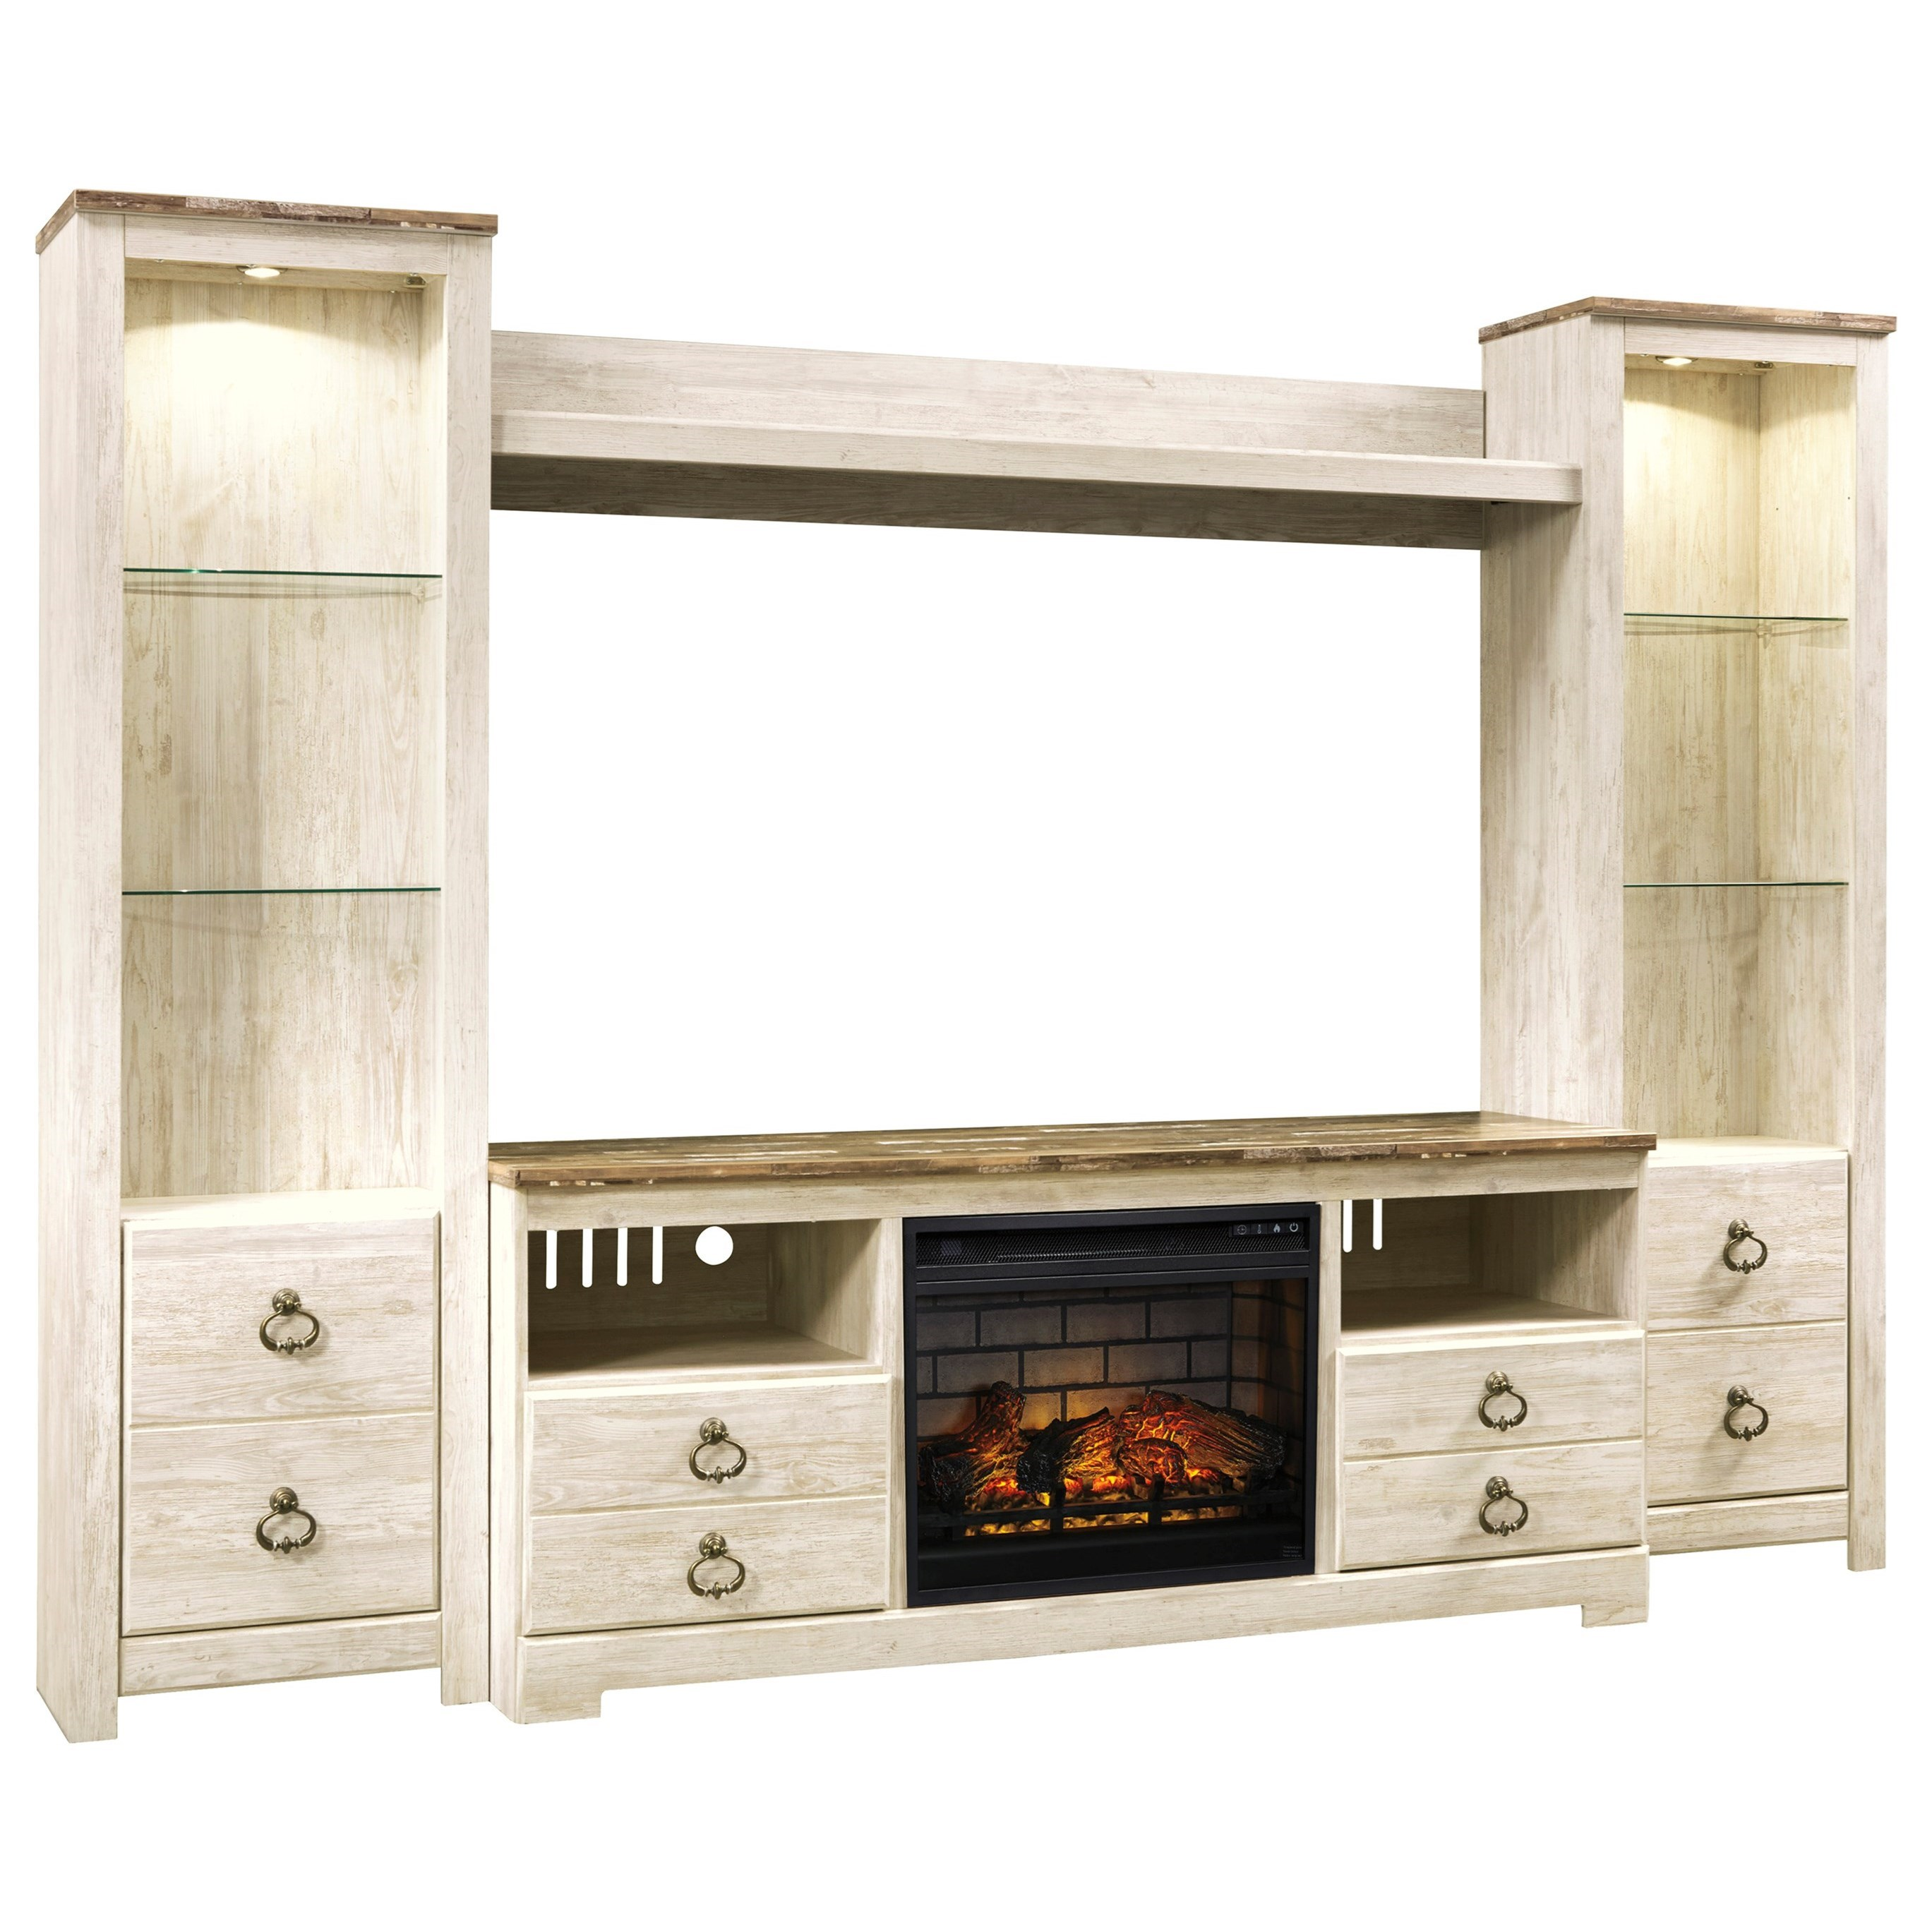 Willowton Entertainment Center with Fireplace Insert by Signature Design by Ashley at Northeast Factory Direct